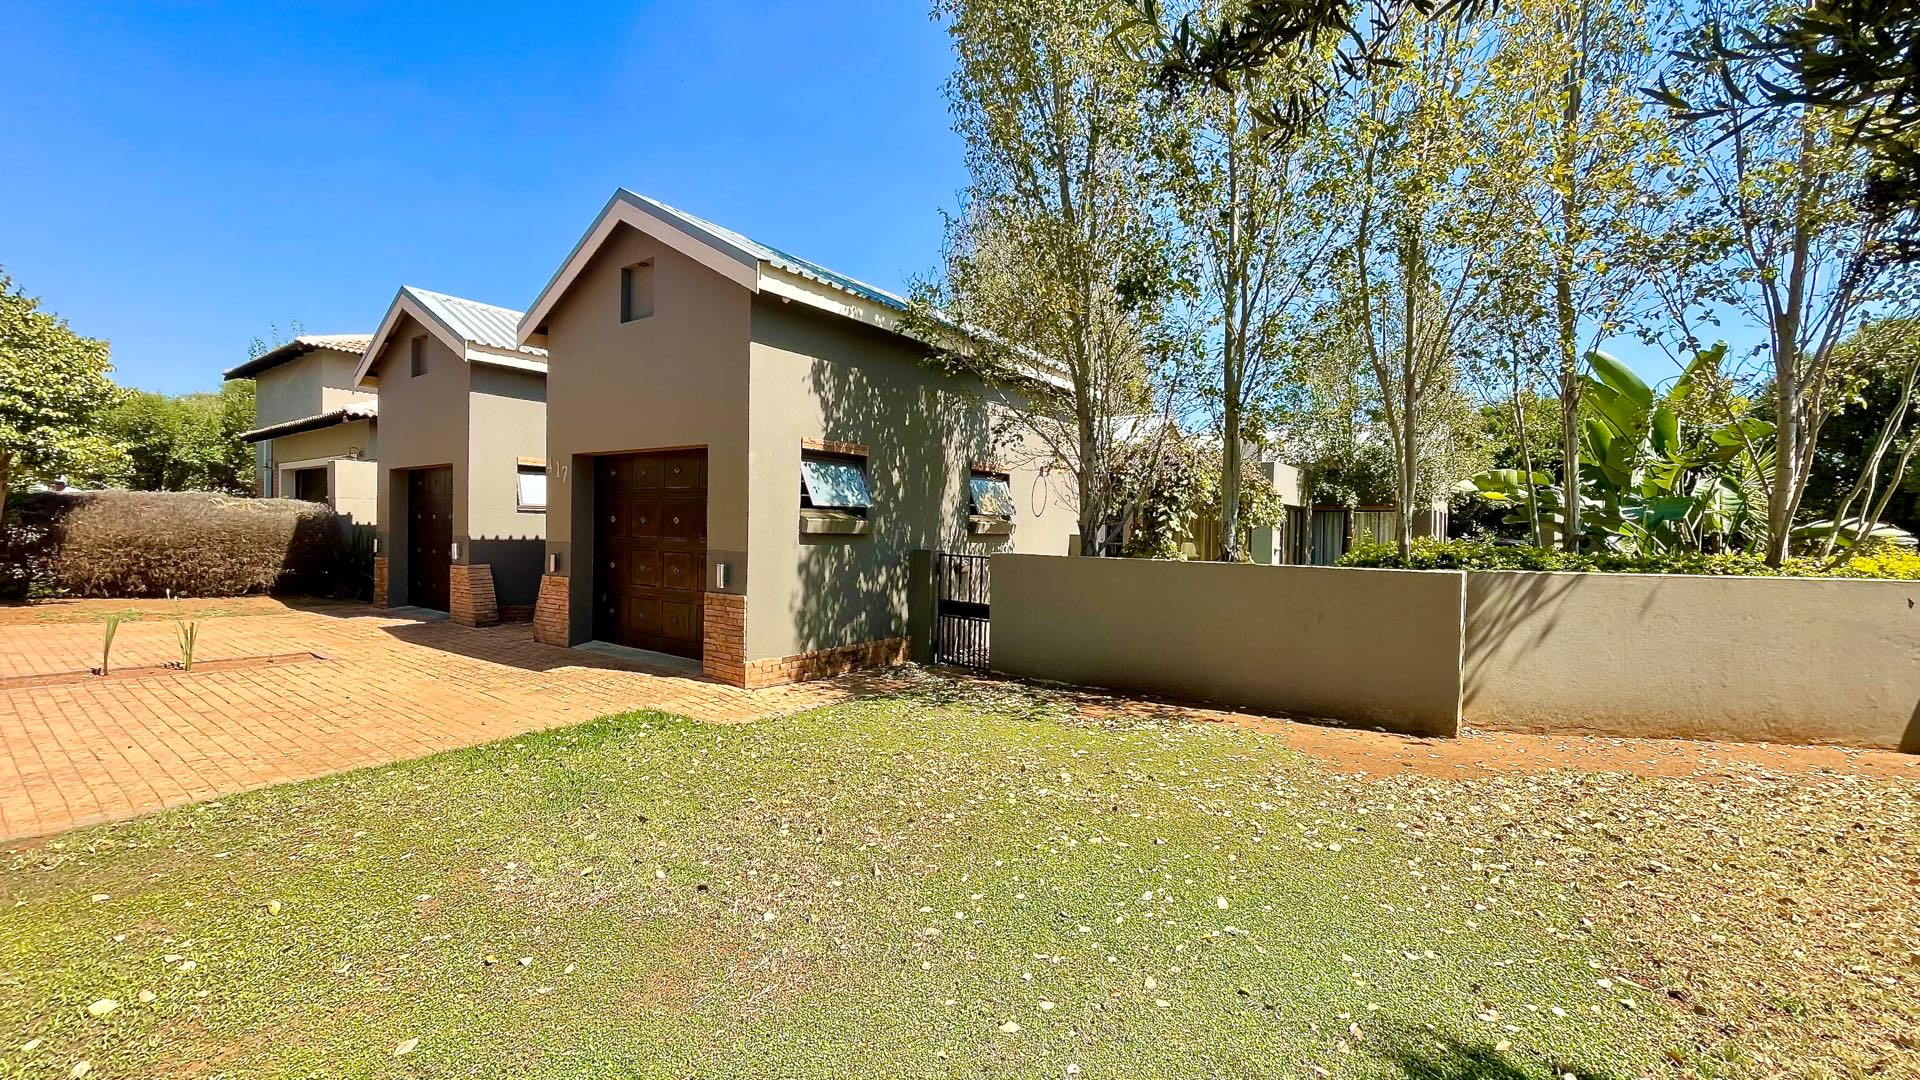 3 Bedroom House For Sale in The Meadows